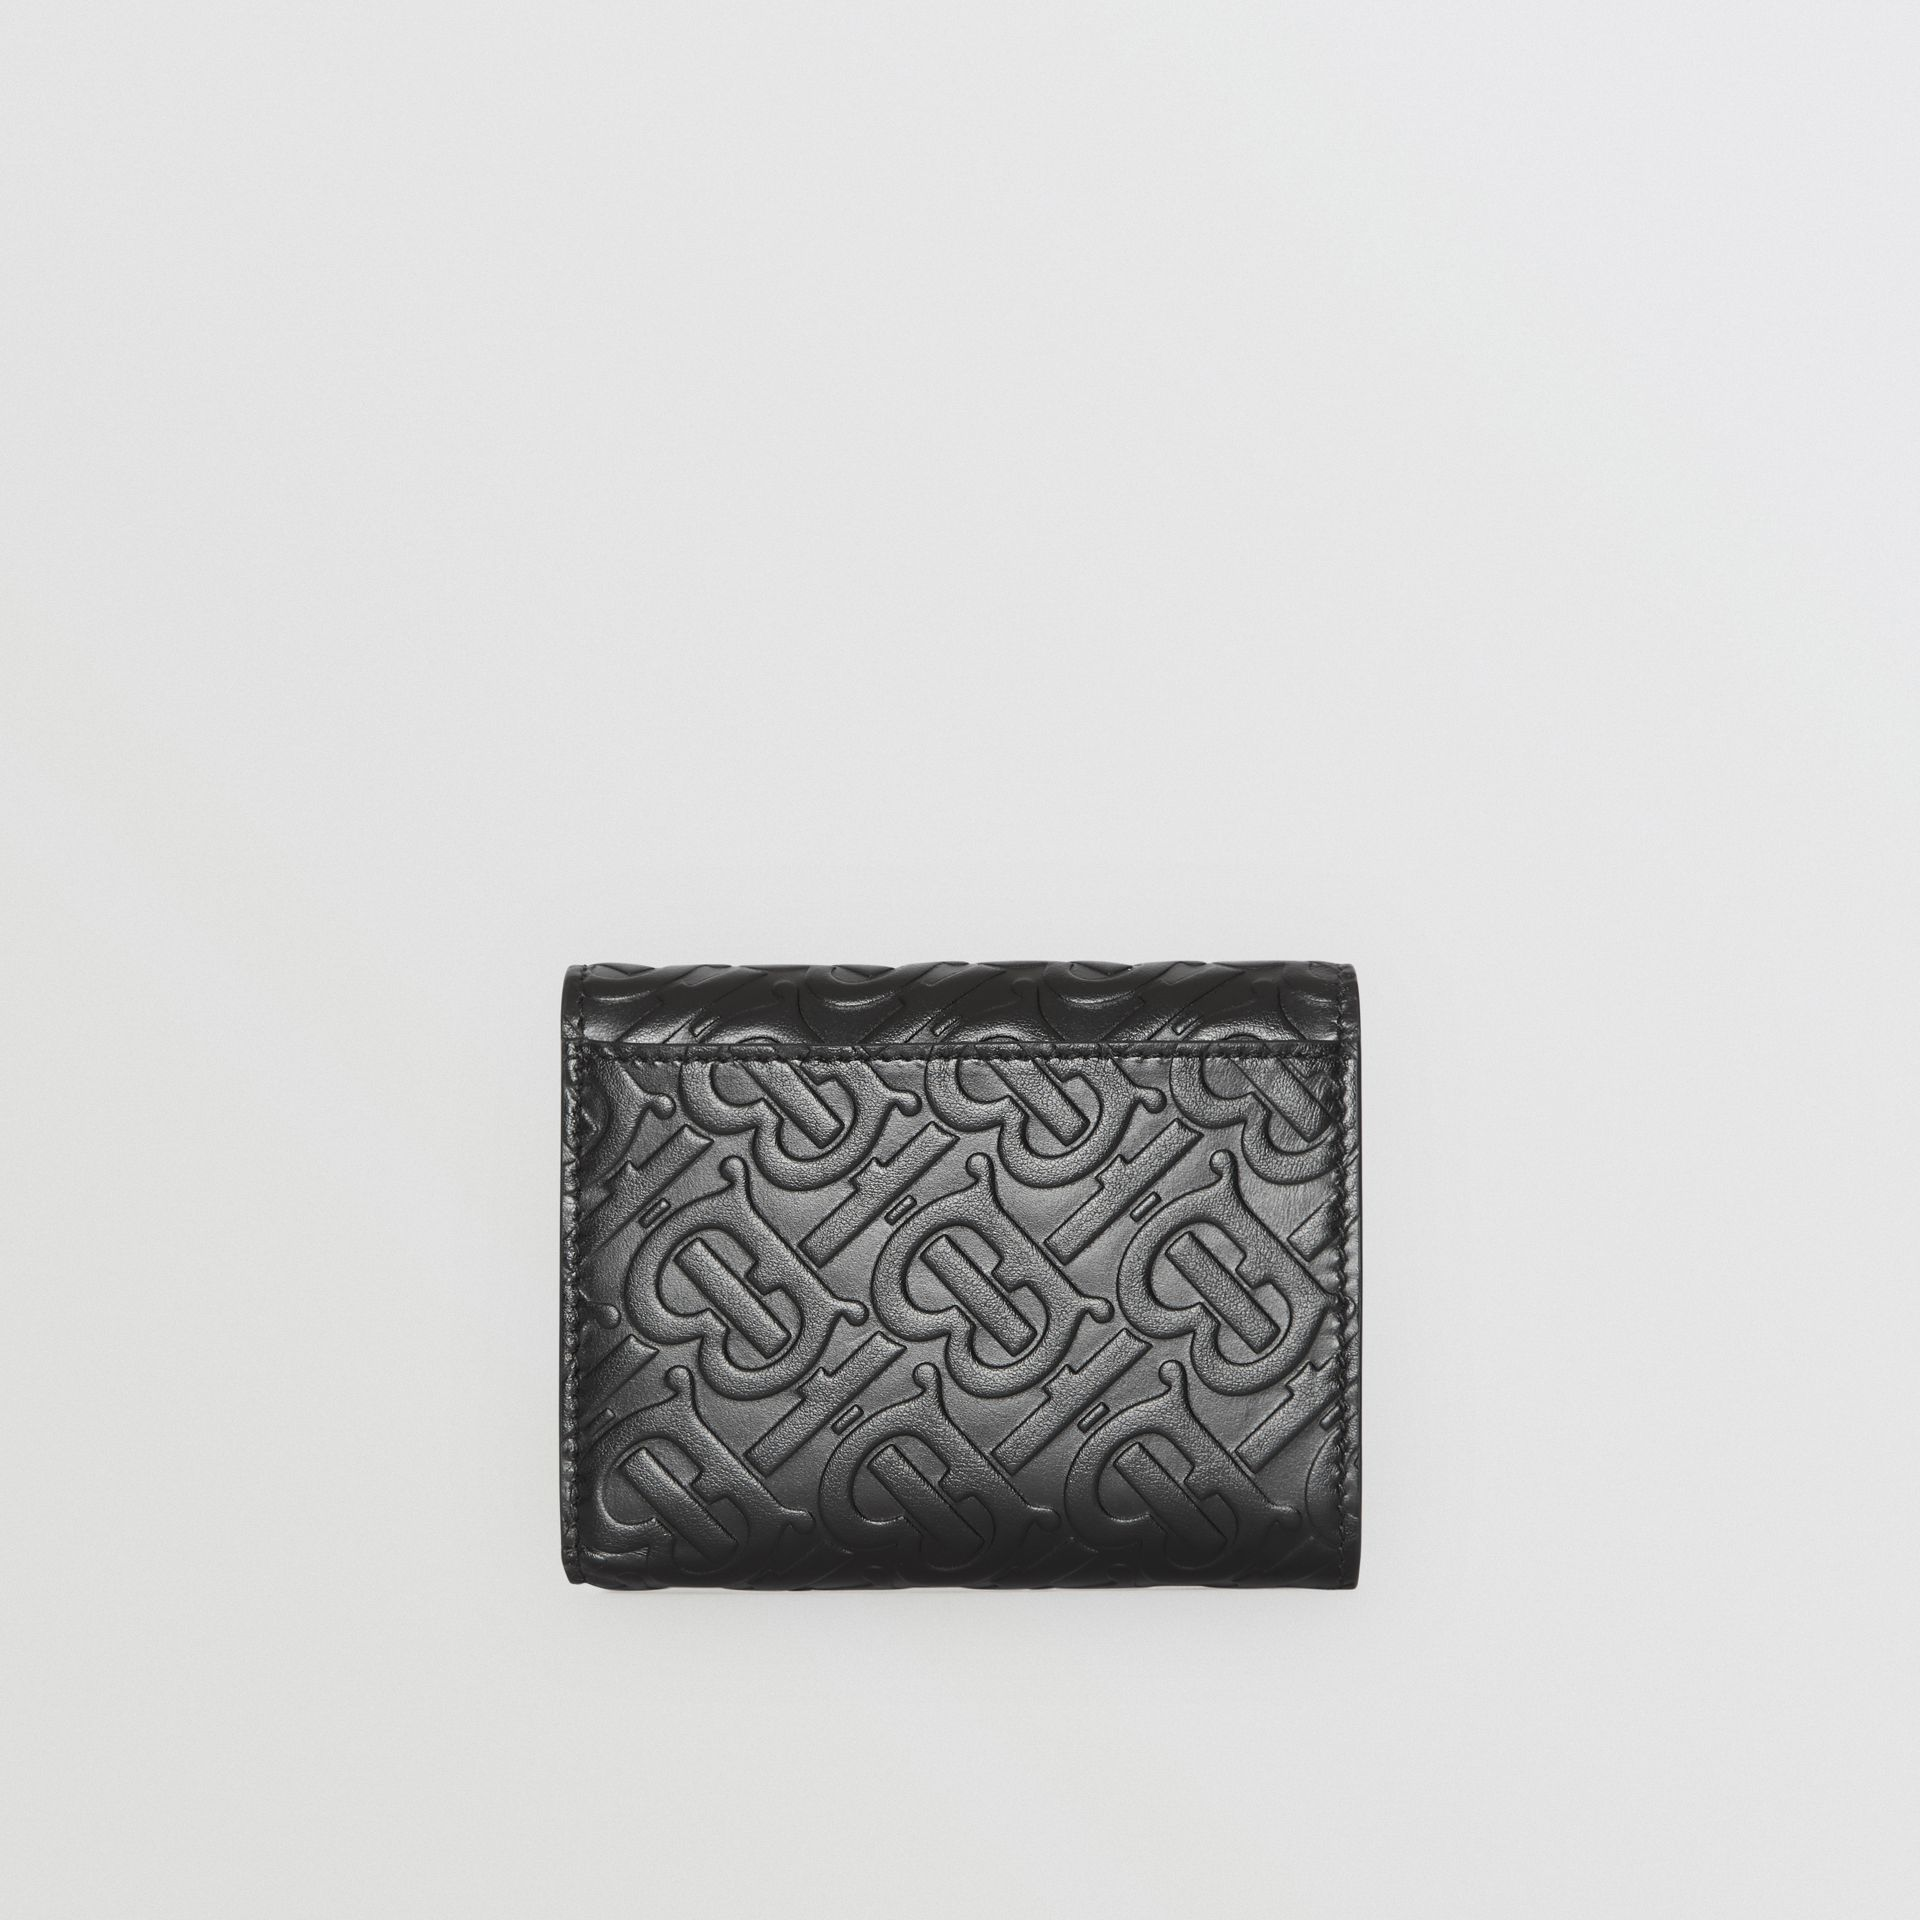 Small Monogram Leather Folding Wallet in Black - Women | Burberry - gallery image 5